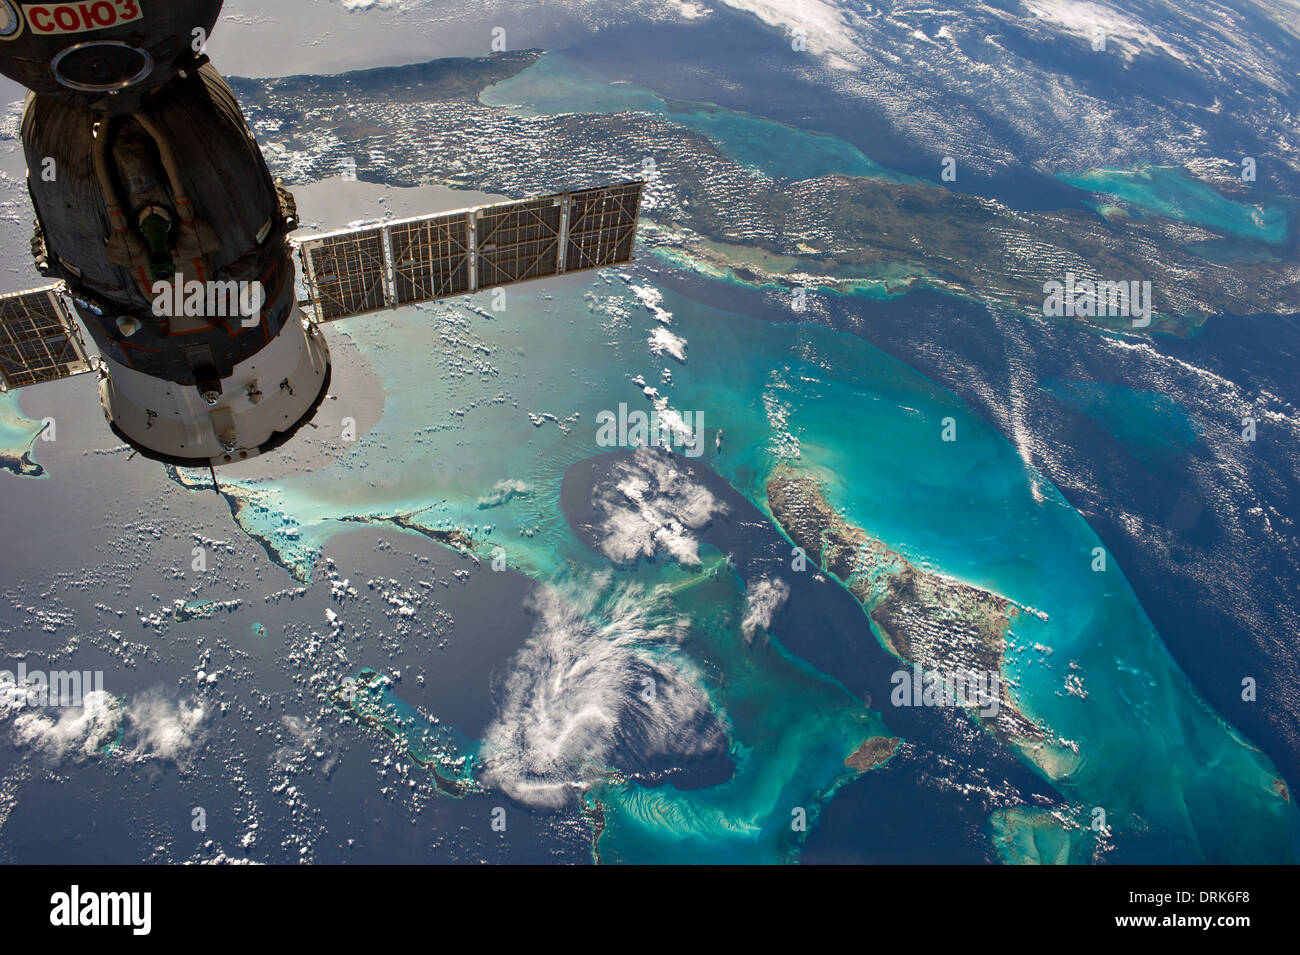 View from the International Space Station of the Caribbean showing Cuba and Andros Island in the Bahamas framed by the docked Soyuz spacecraft December 23, 2013. - Stock Image